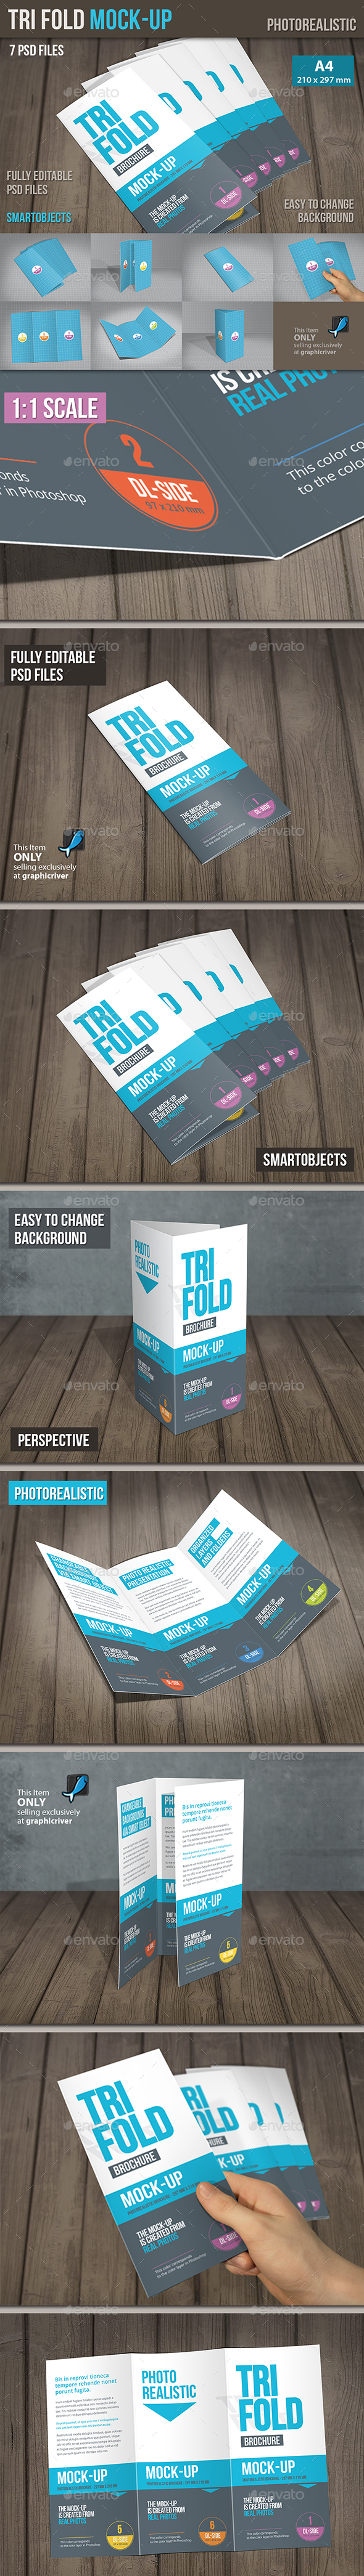 Mock-Up Trifold Brochure  - Brochures Print